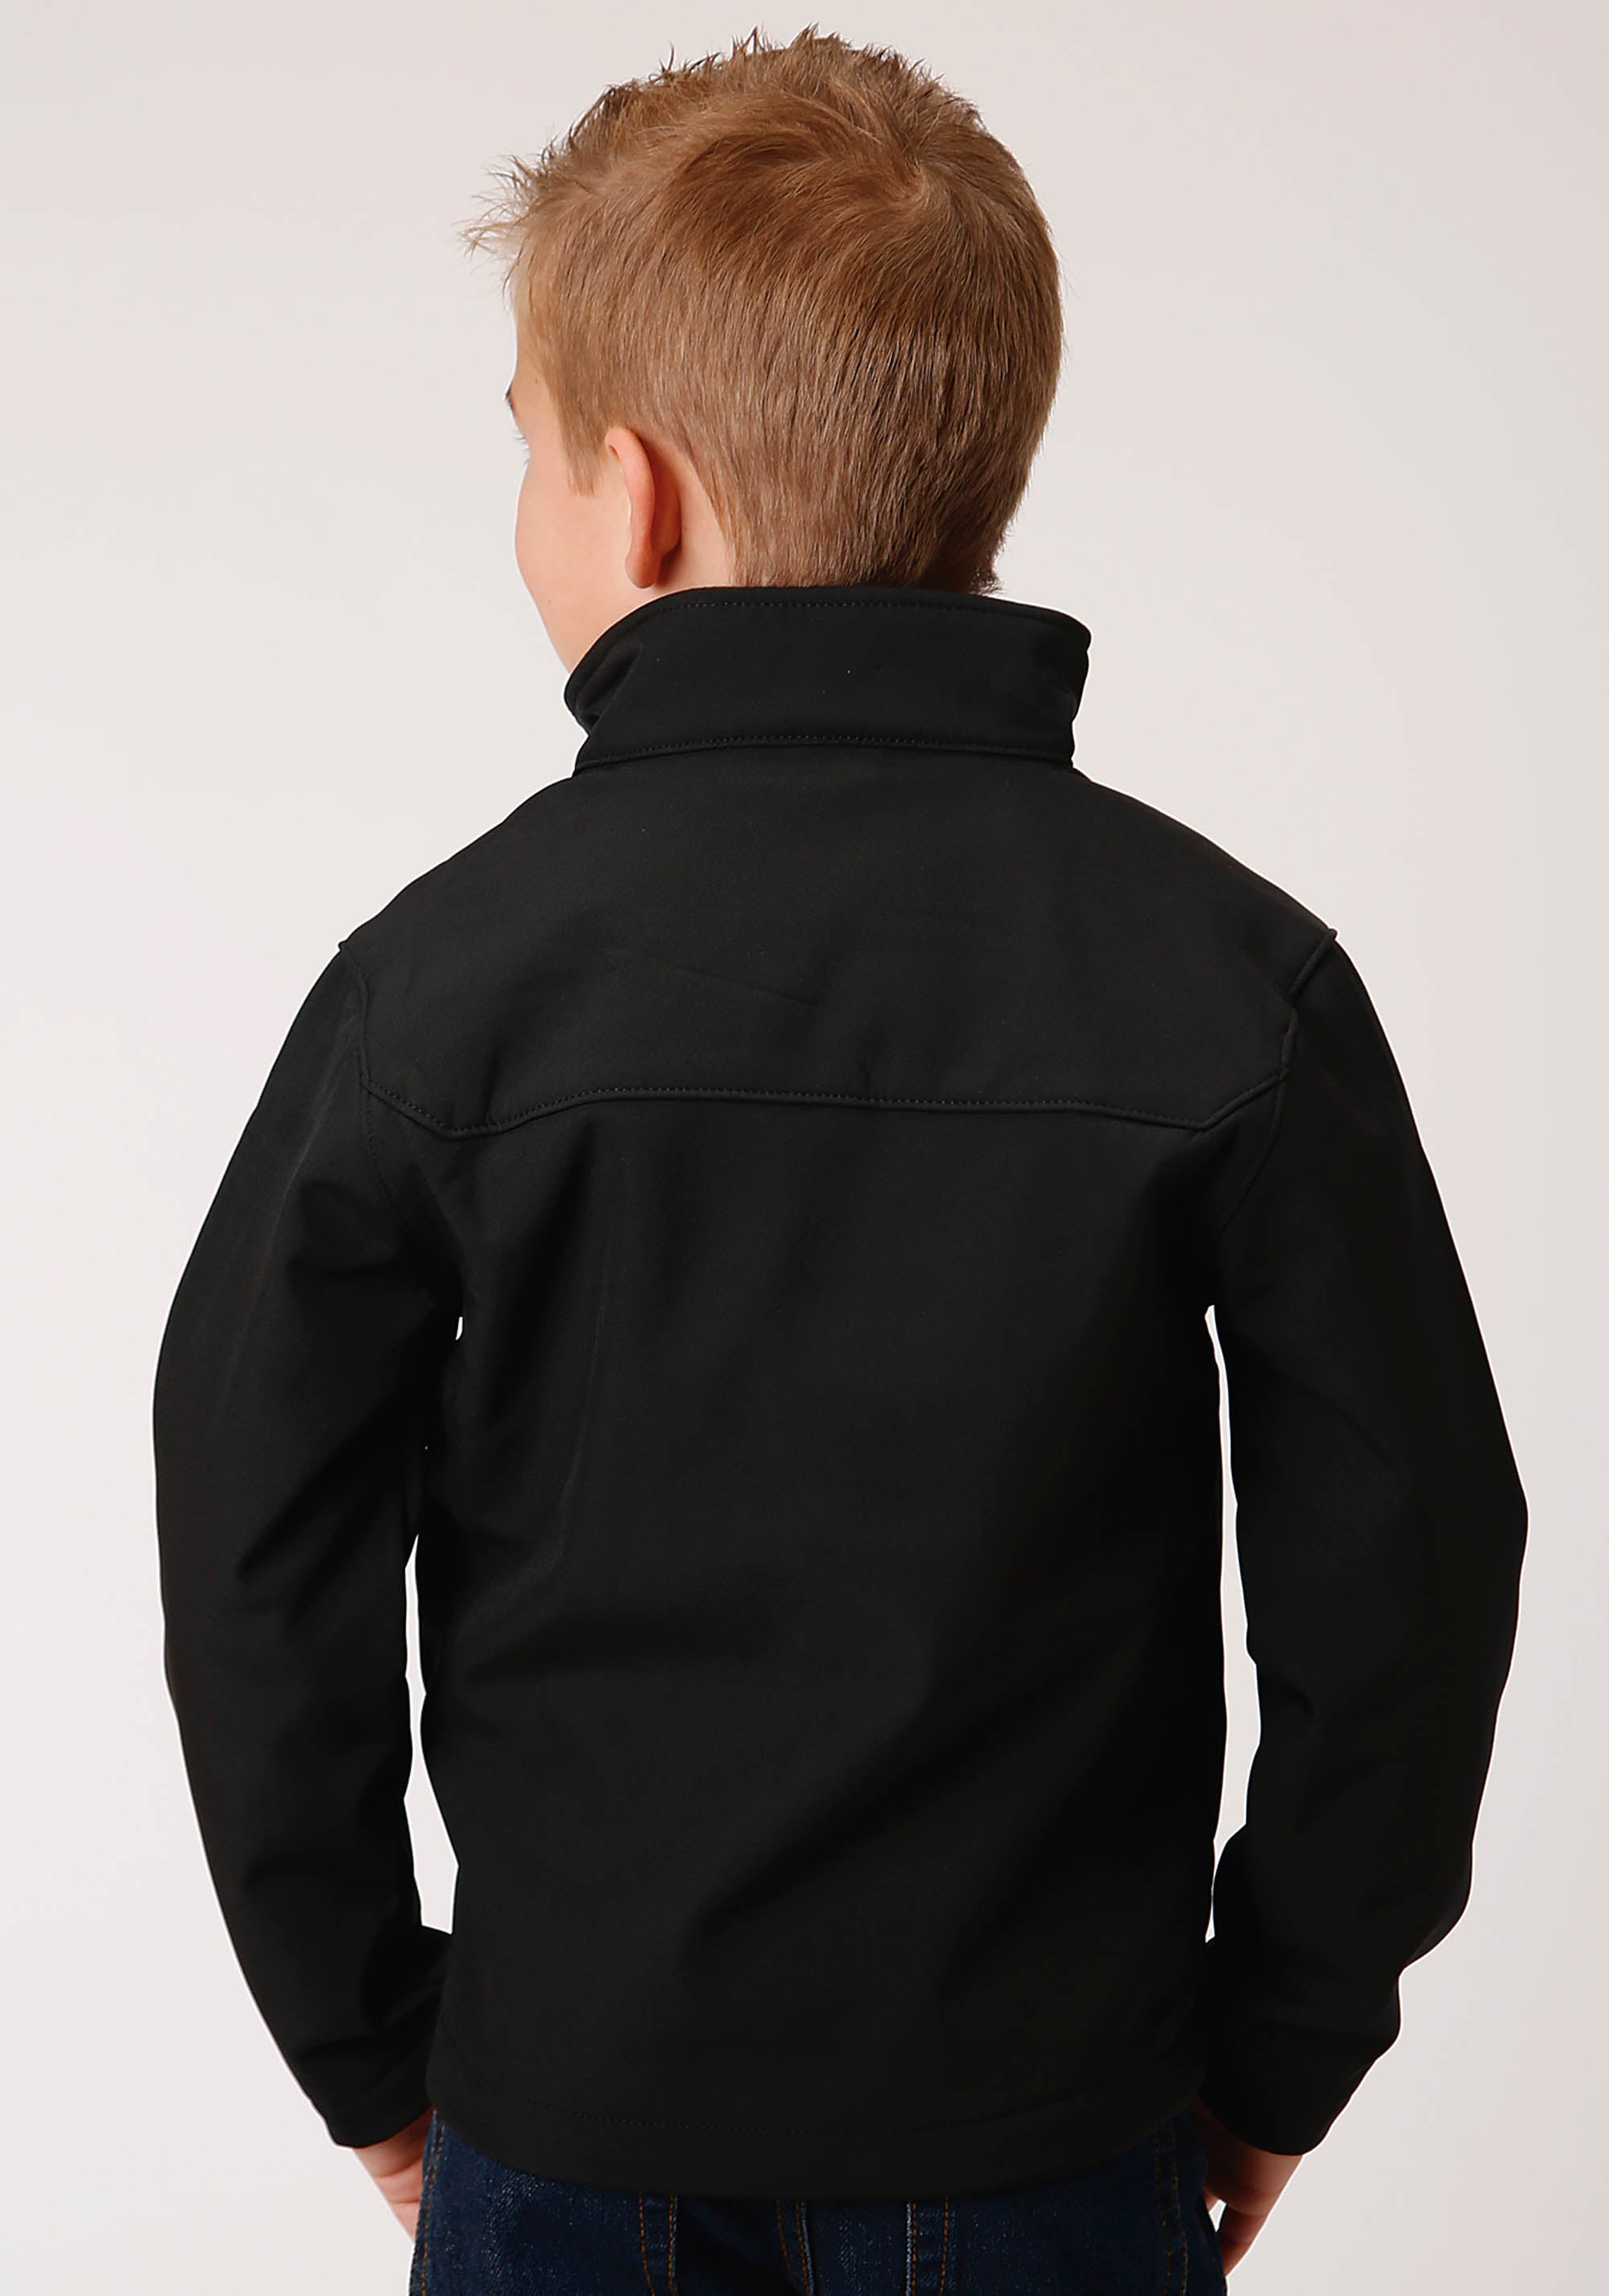 OUTERWEAR BOYS BLACK 00259 BLACK W/BLACK SOFTSHELL JACKET BONDED GROUP